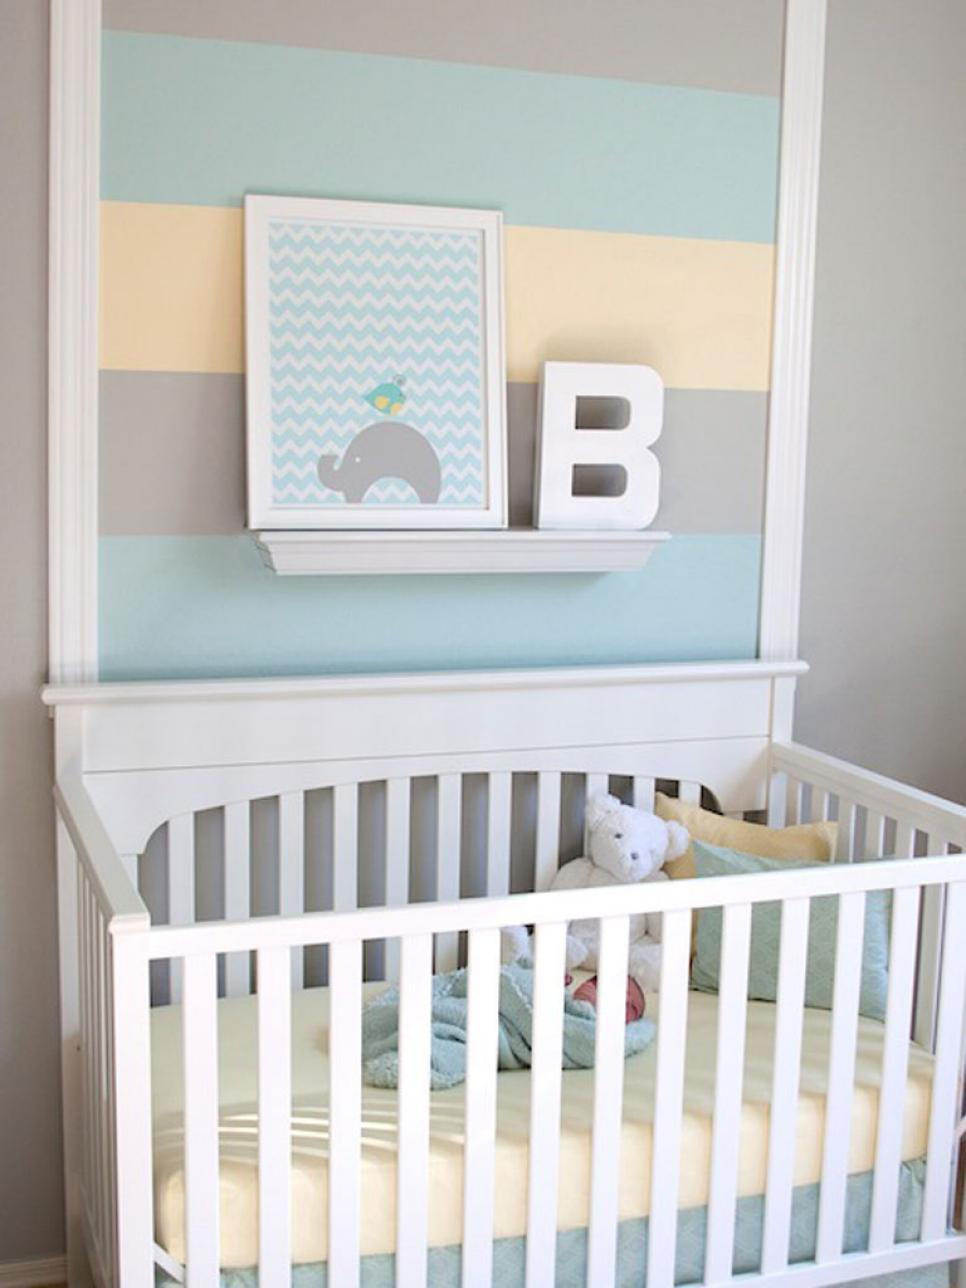 original_project-nursery-kid-room-paint-stripes_s3x4_jpg_rend_hgtvcom_966_1288.jpeg